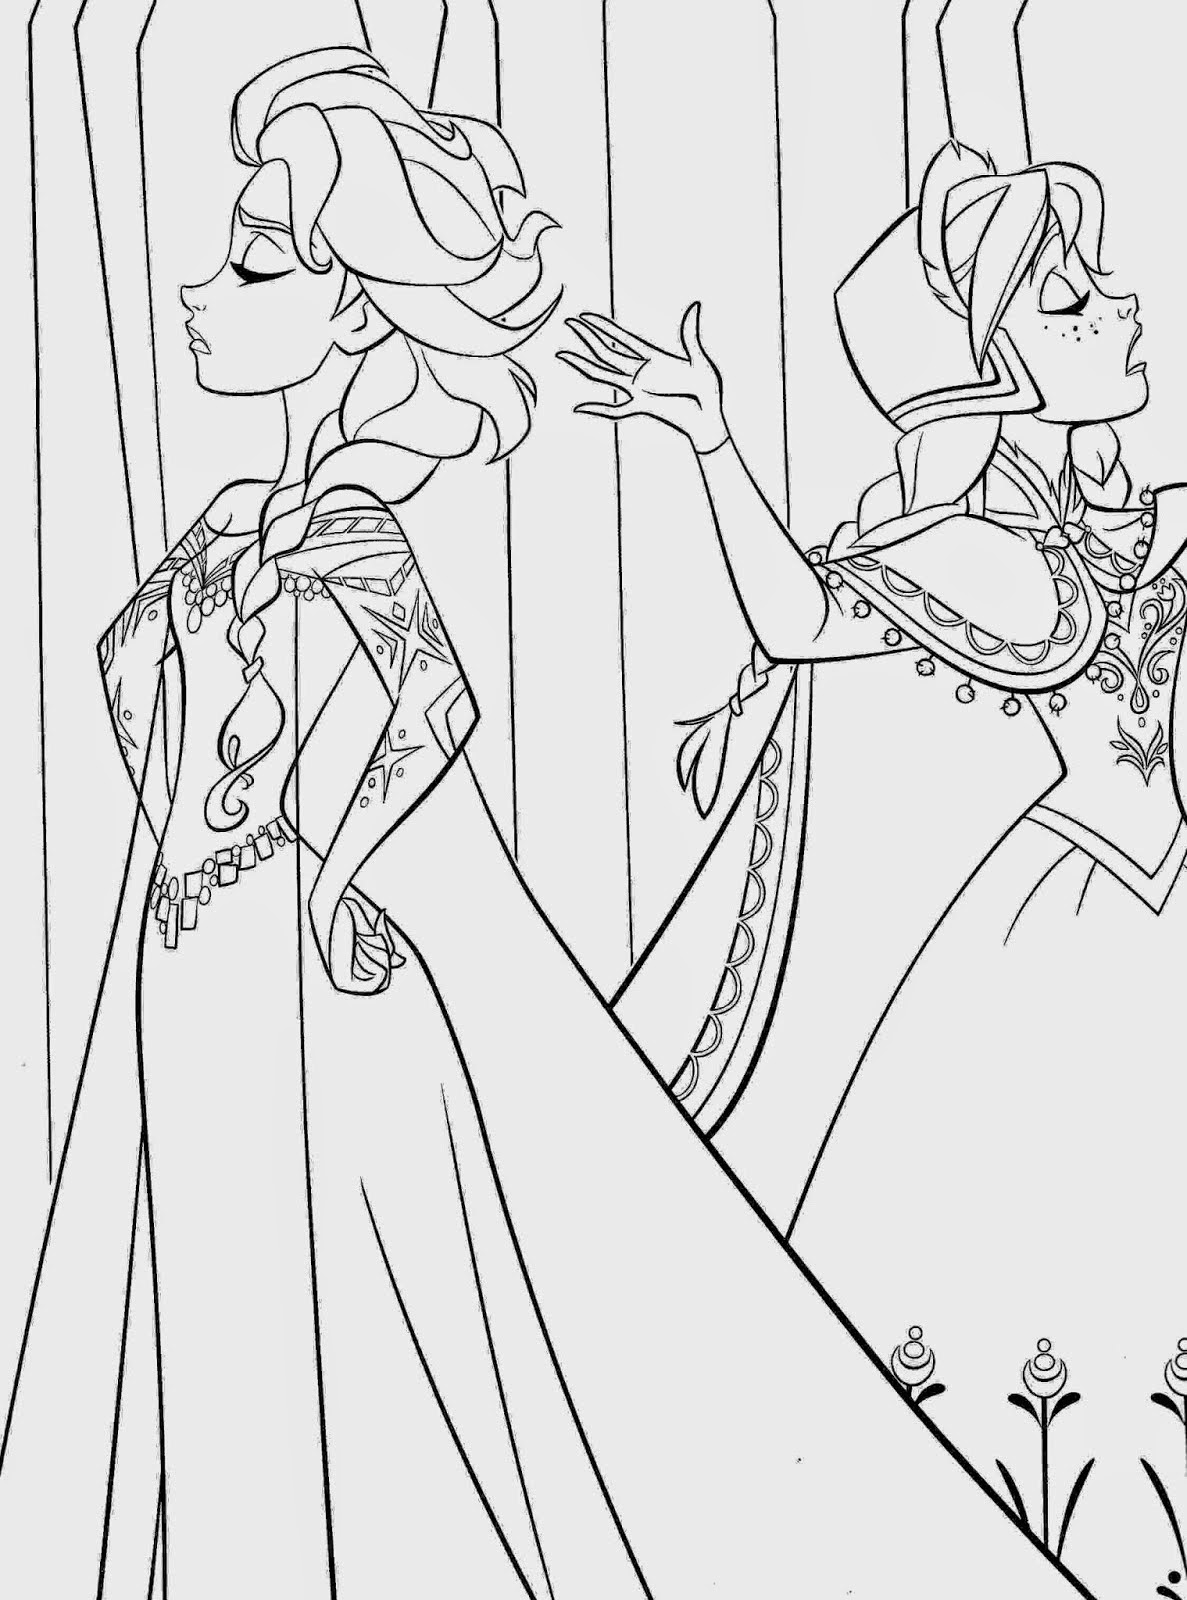 printable coloring pages frozen new frozen 2 coloring pages with elsa youloveitcom printable frozen pages coloring